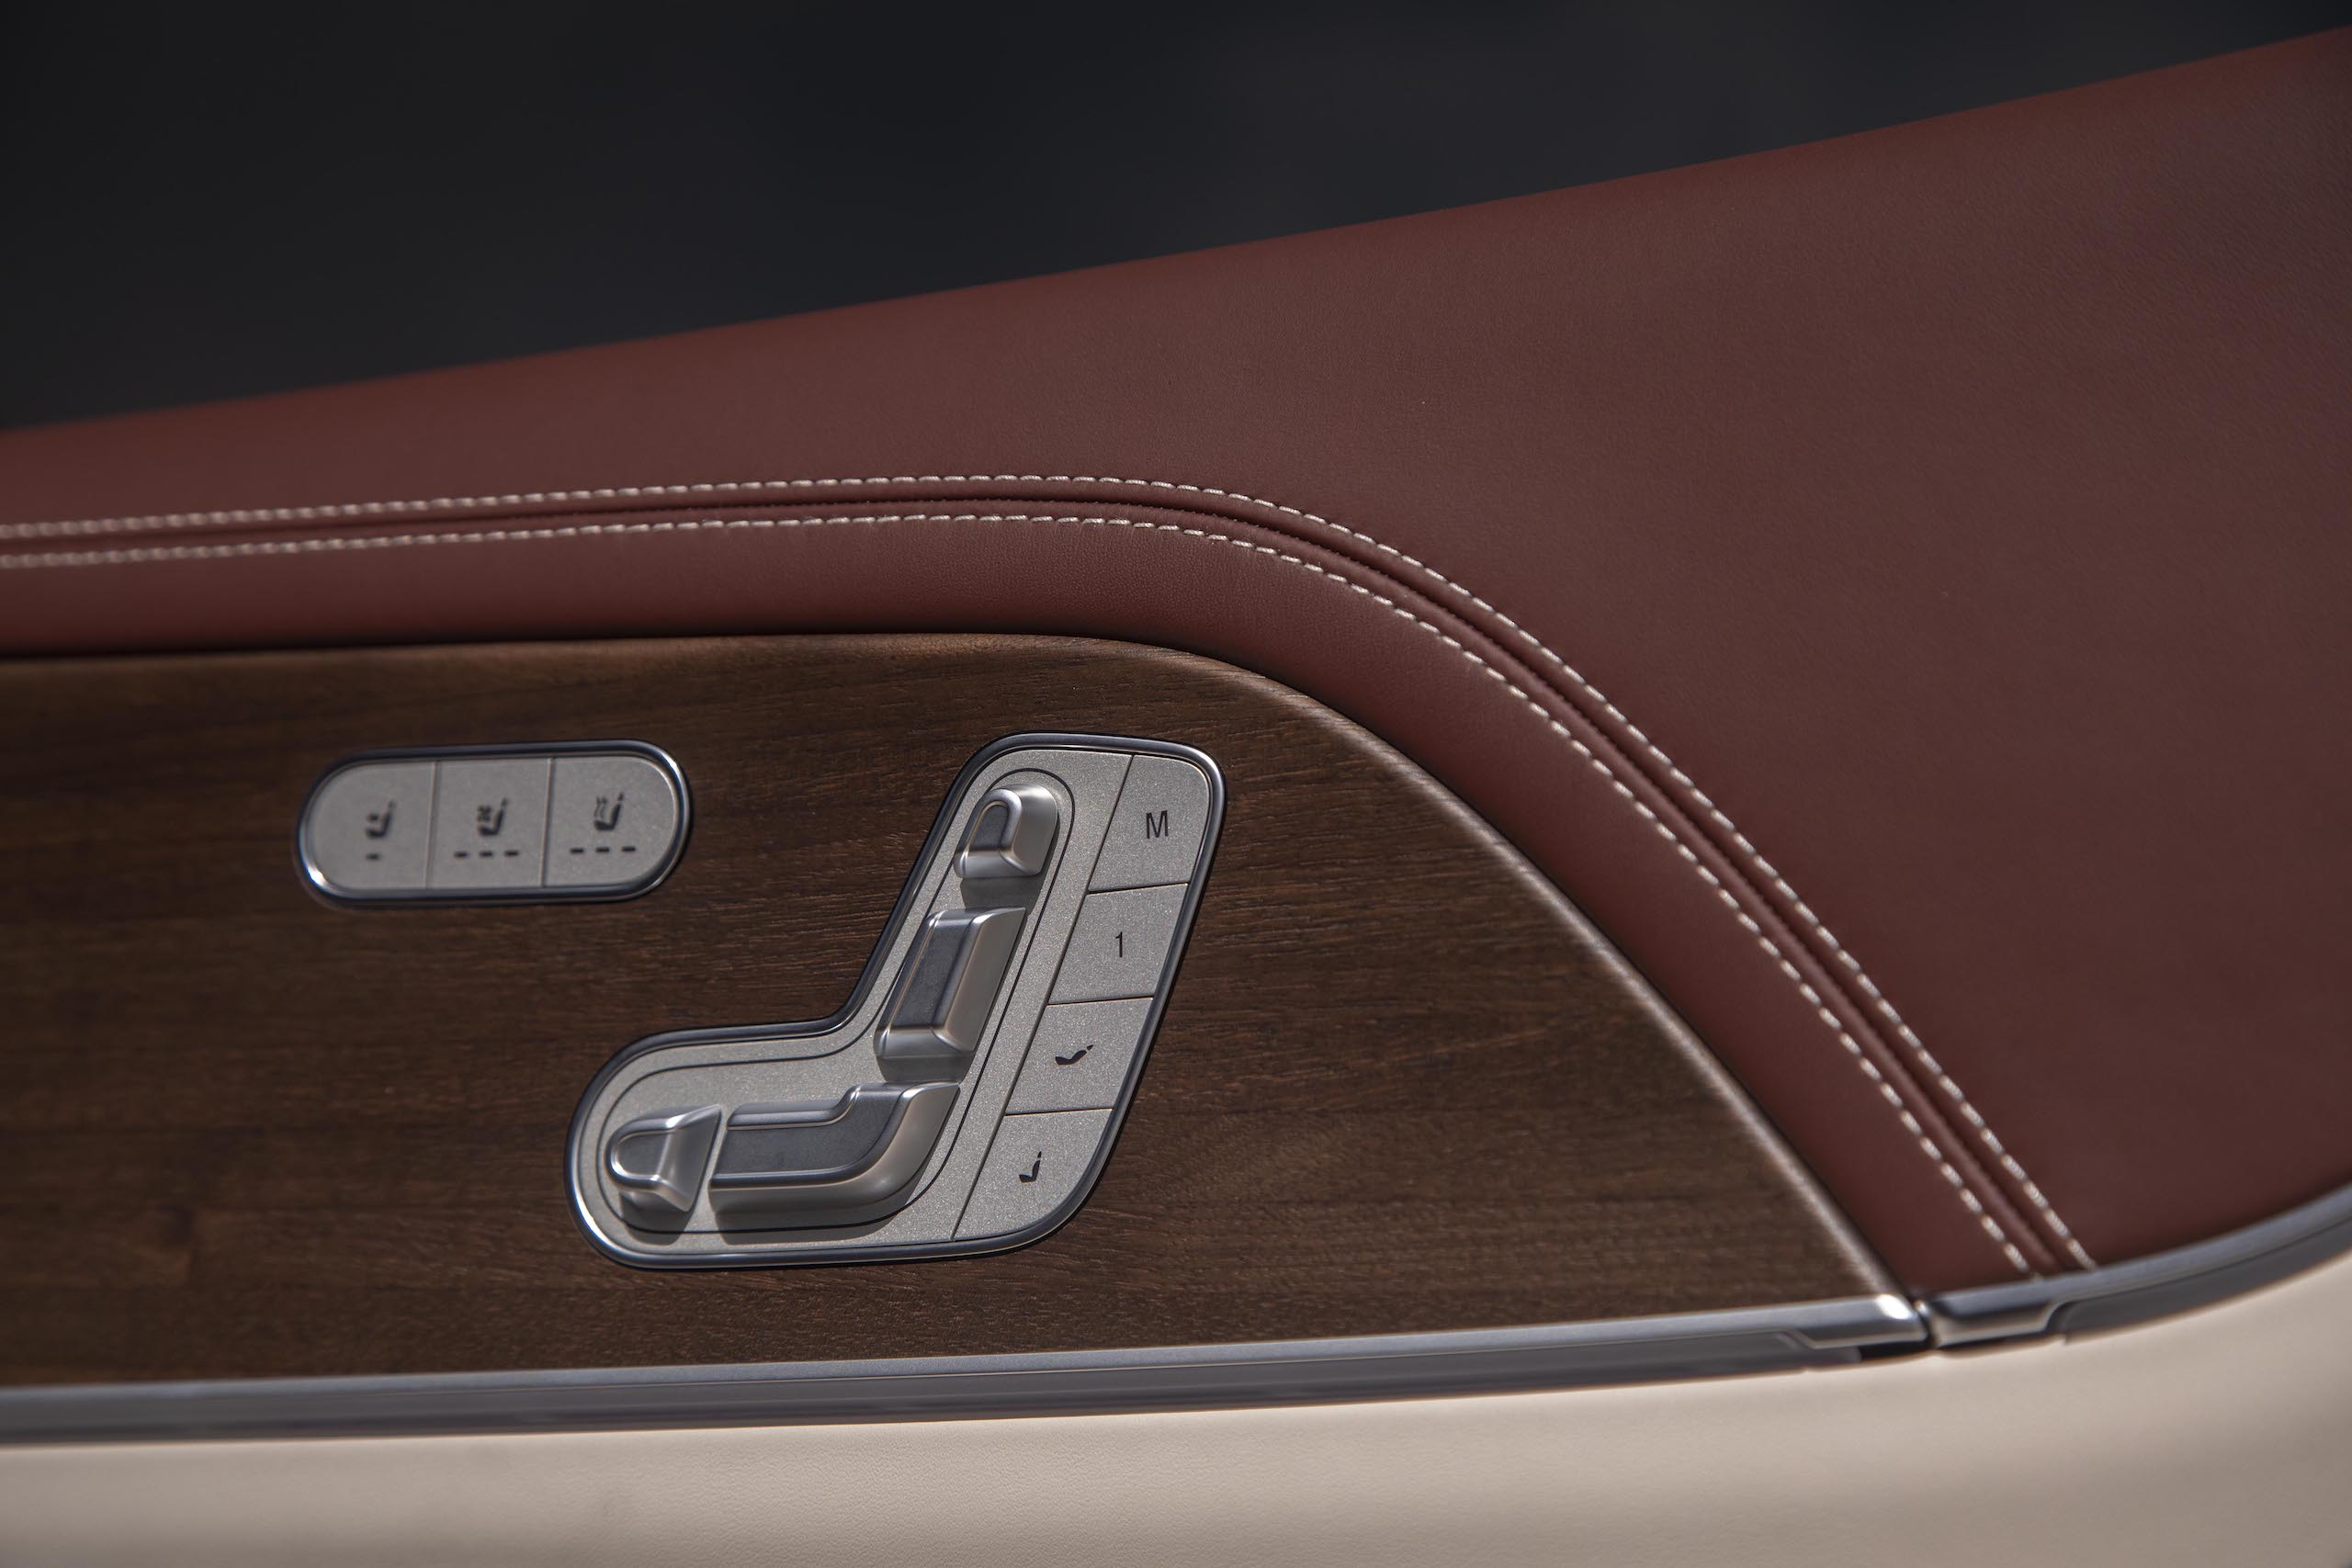 Mercedes-Maybach GLS 600 interior seat control position detail